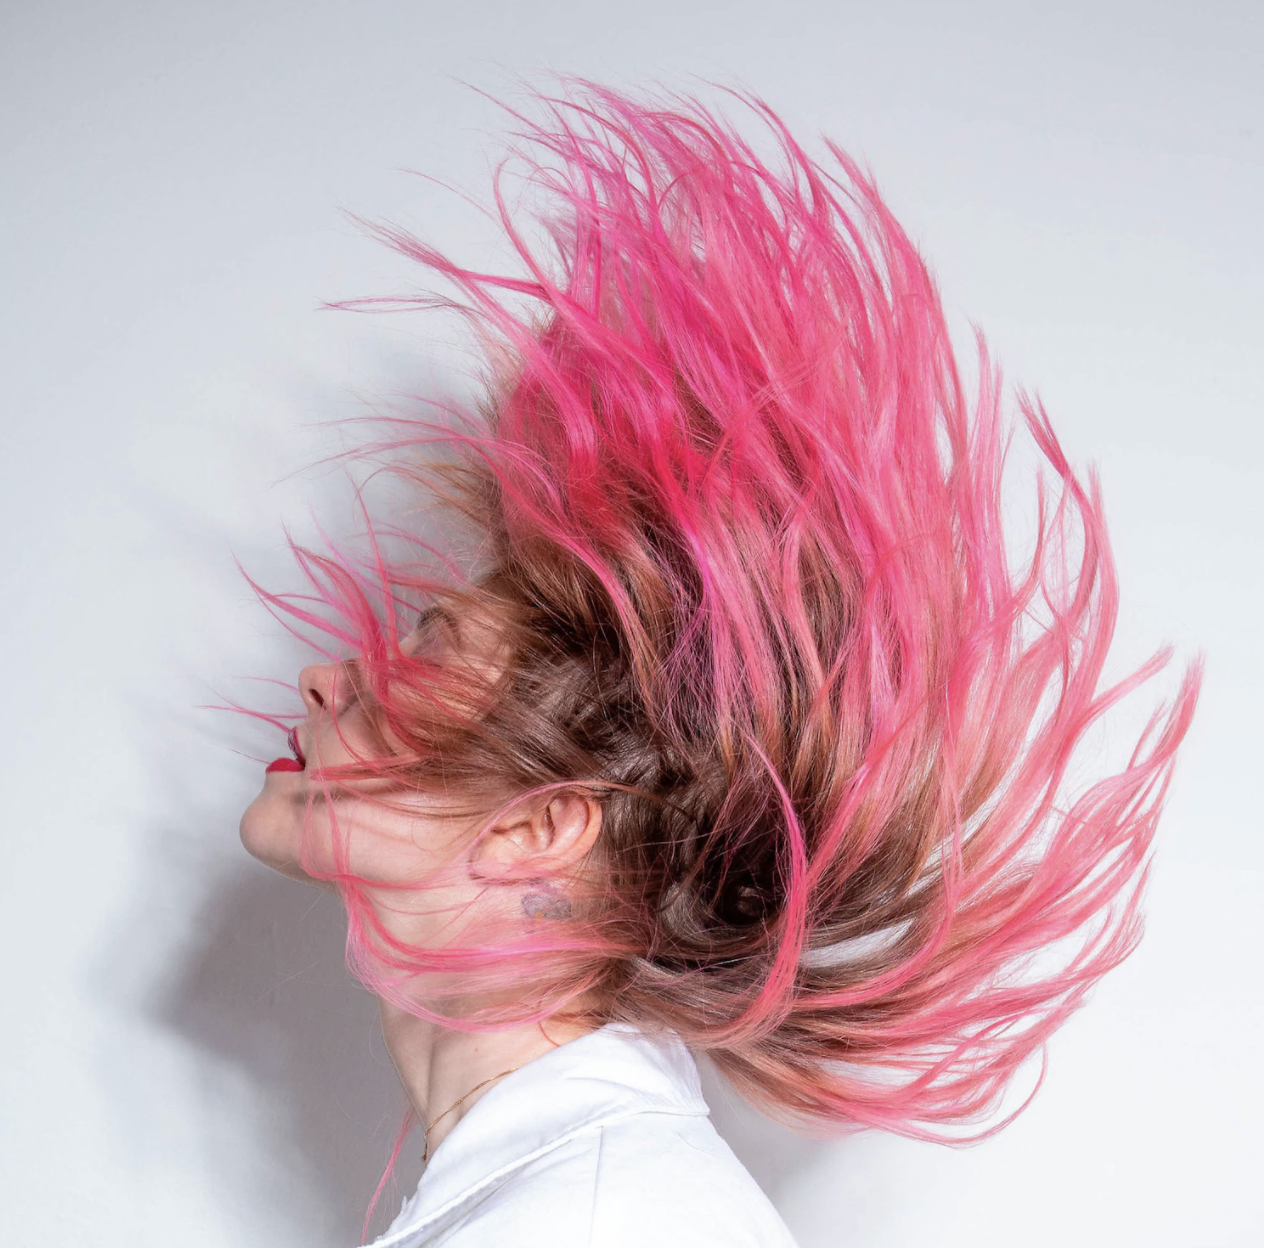 A model showing brown hair with hot pink tips